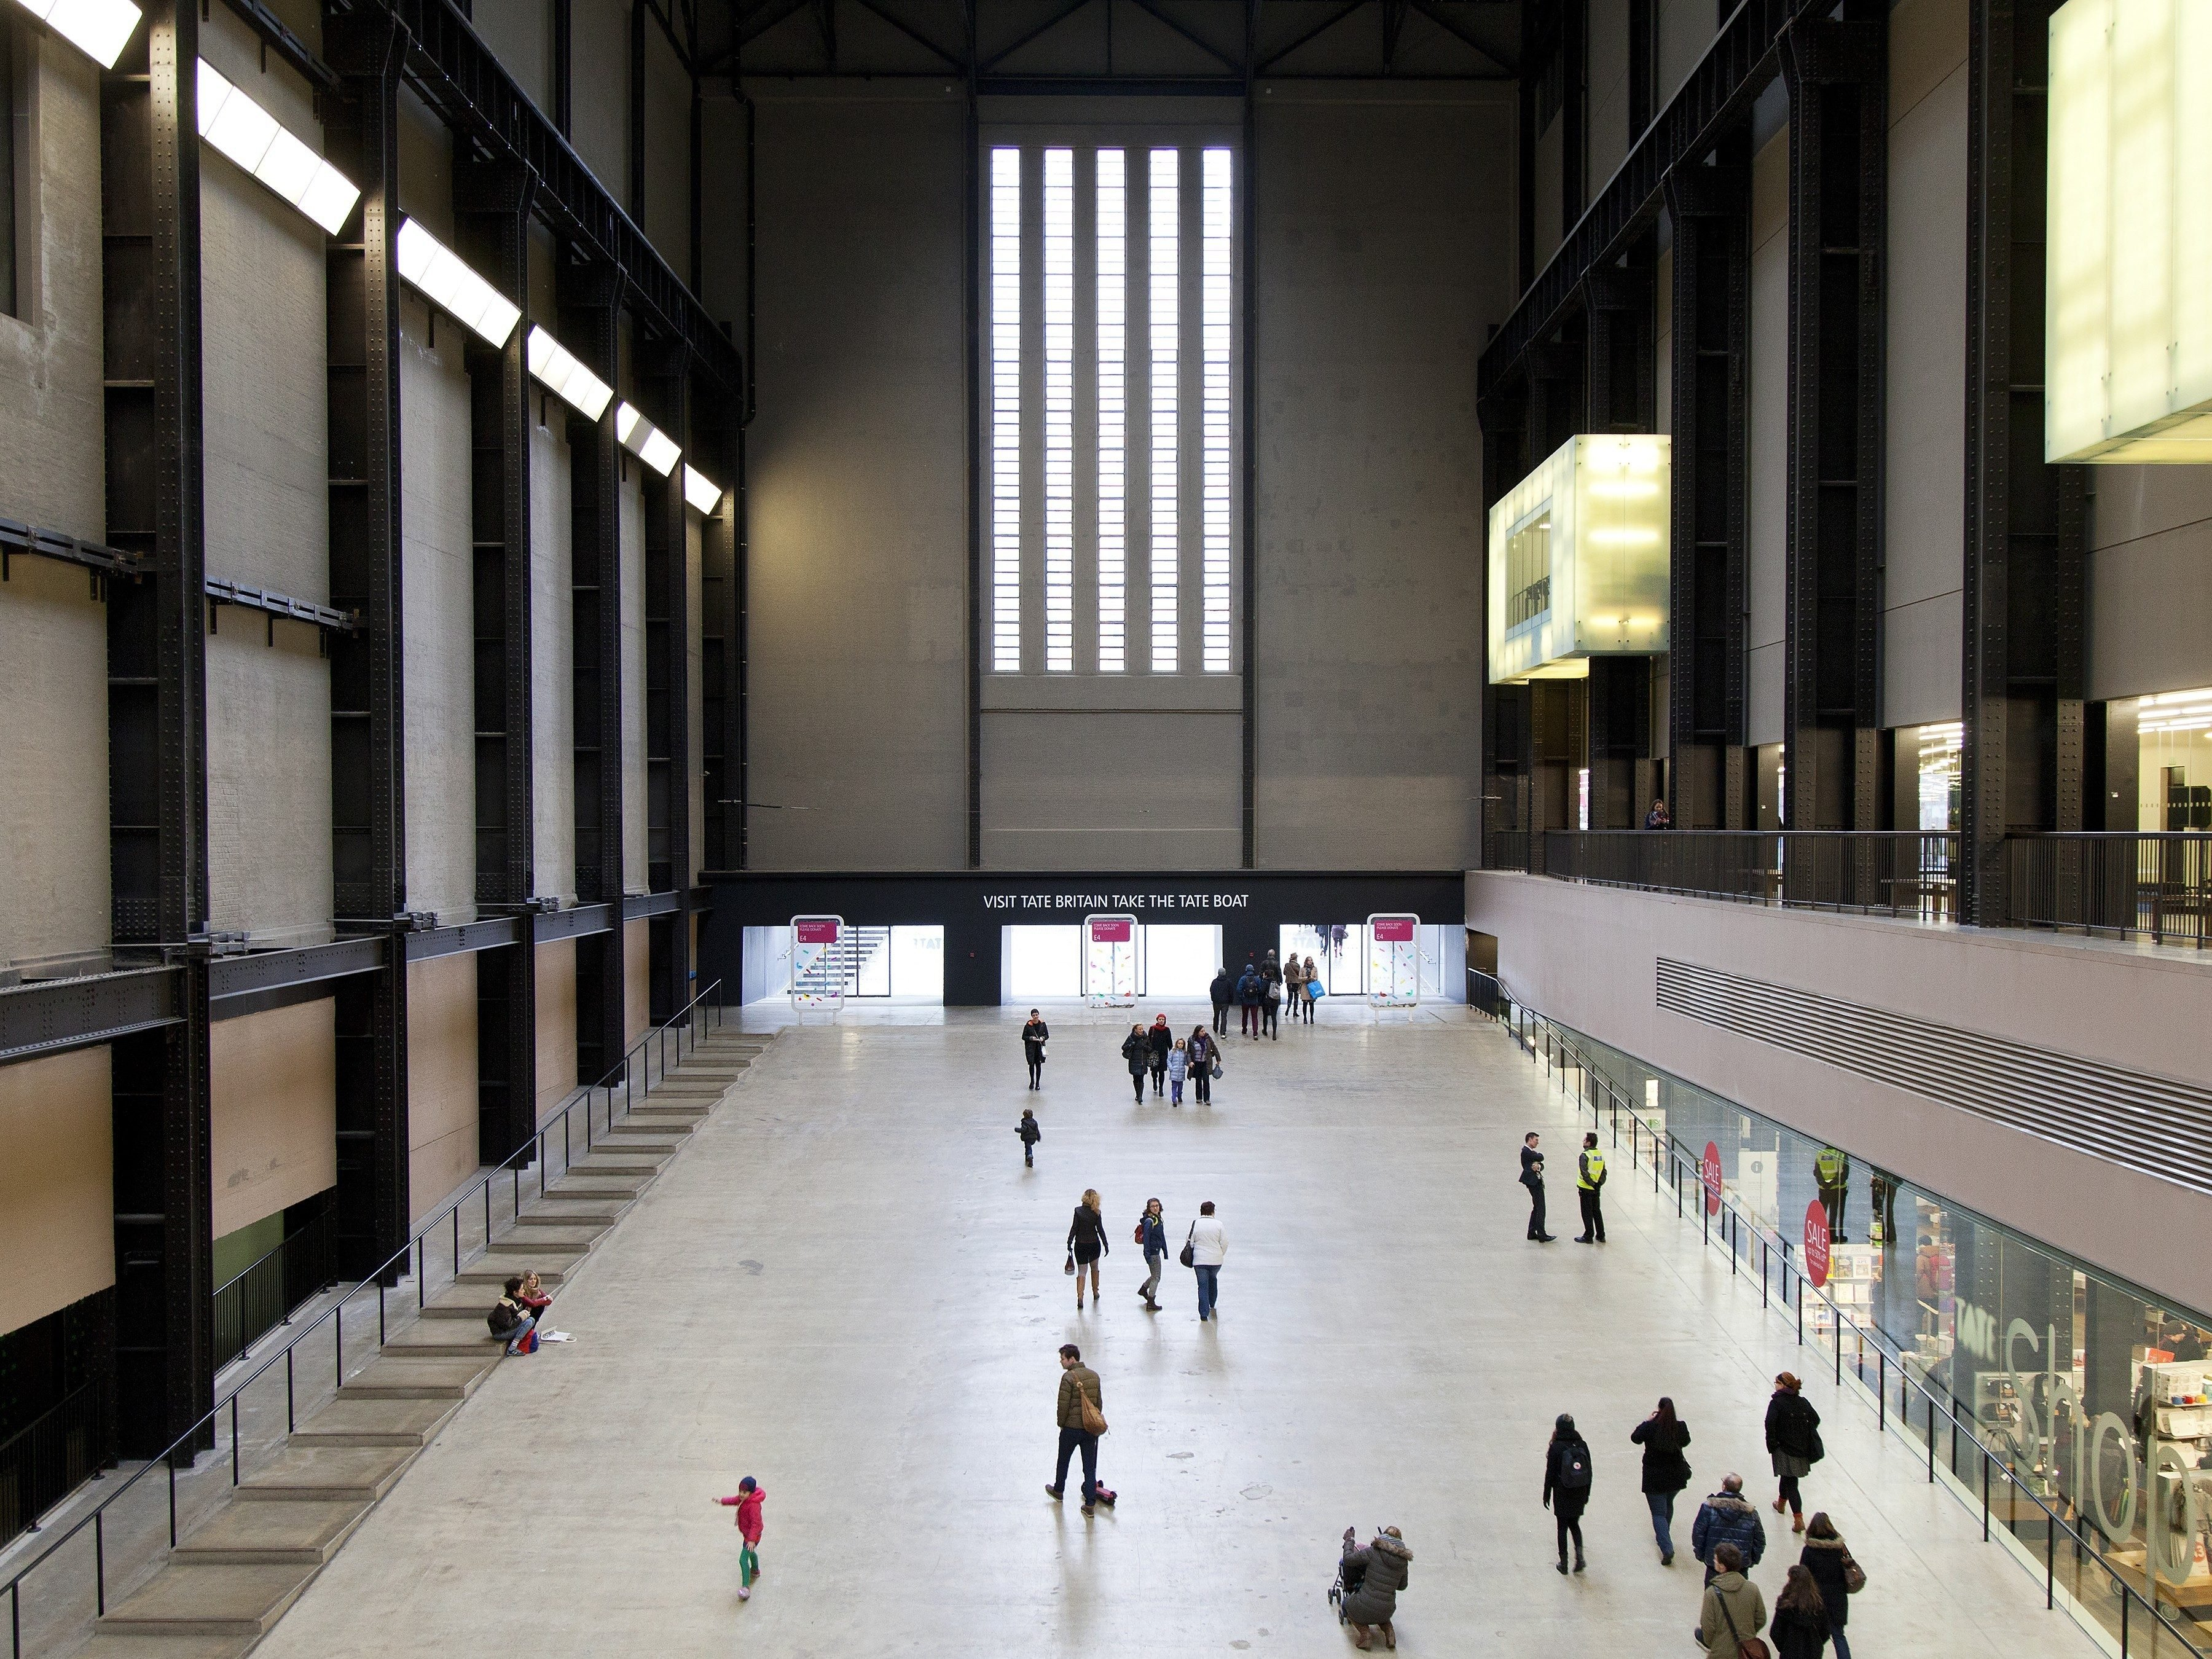 London attractions: Tate Modern and Tate Britain